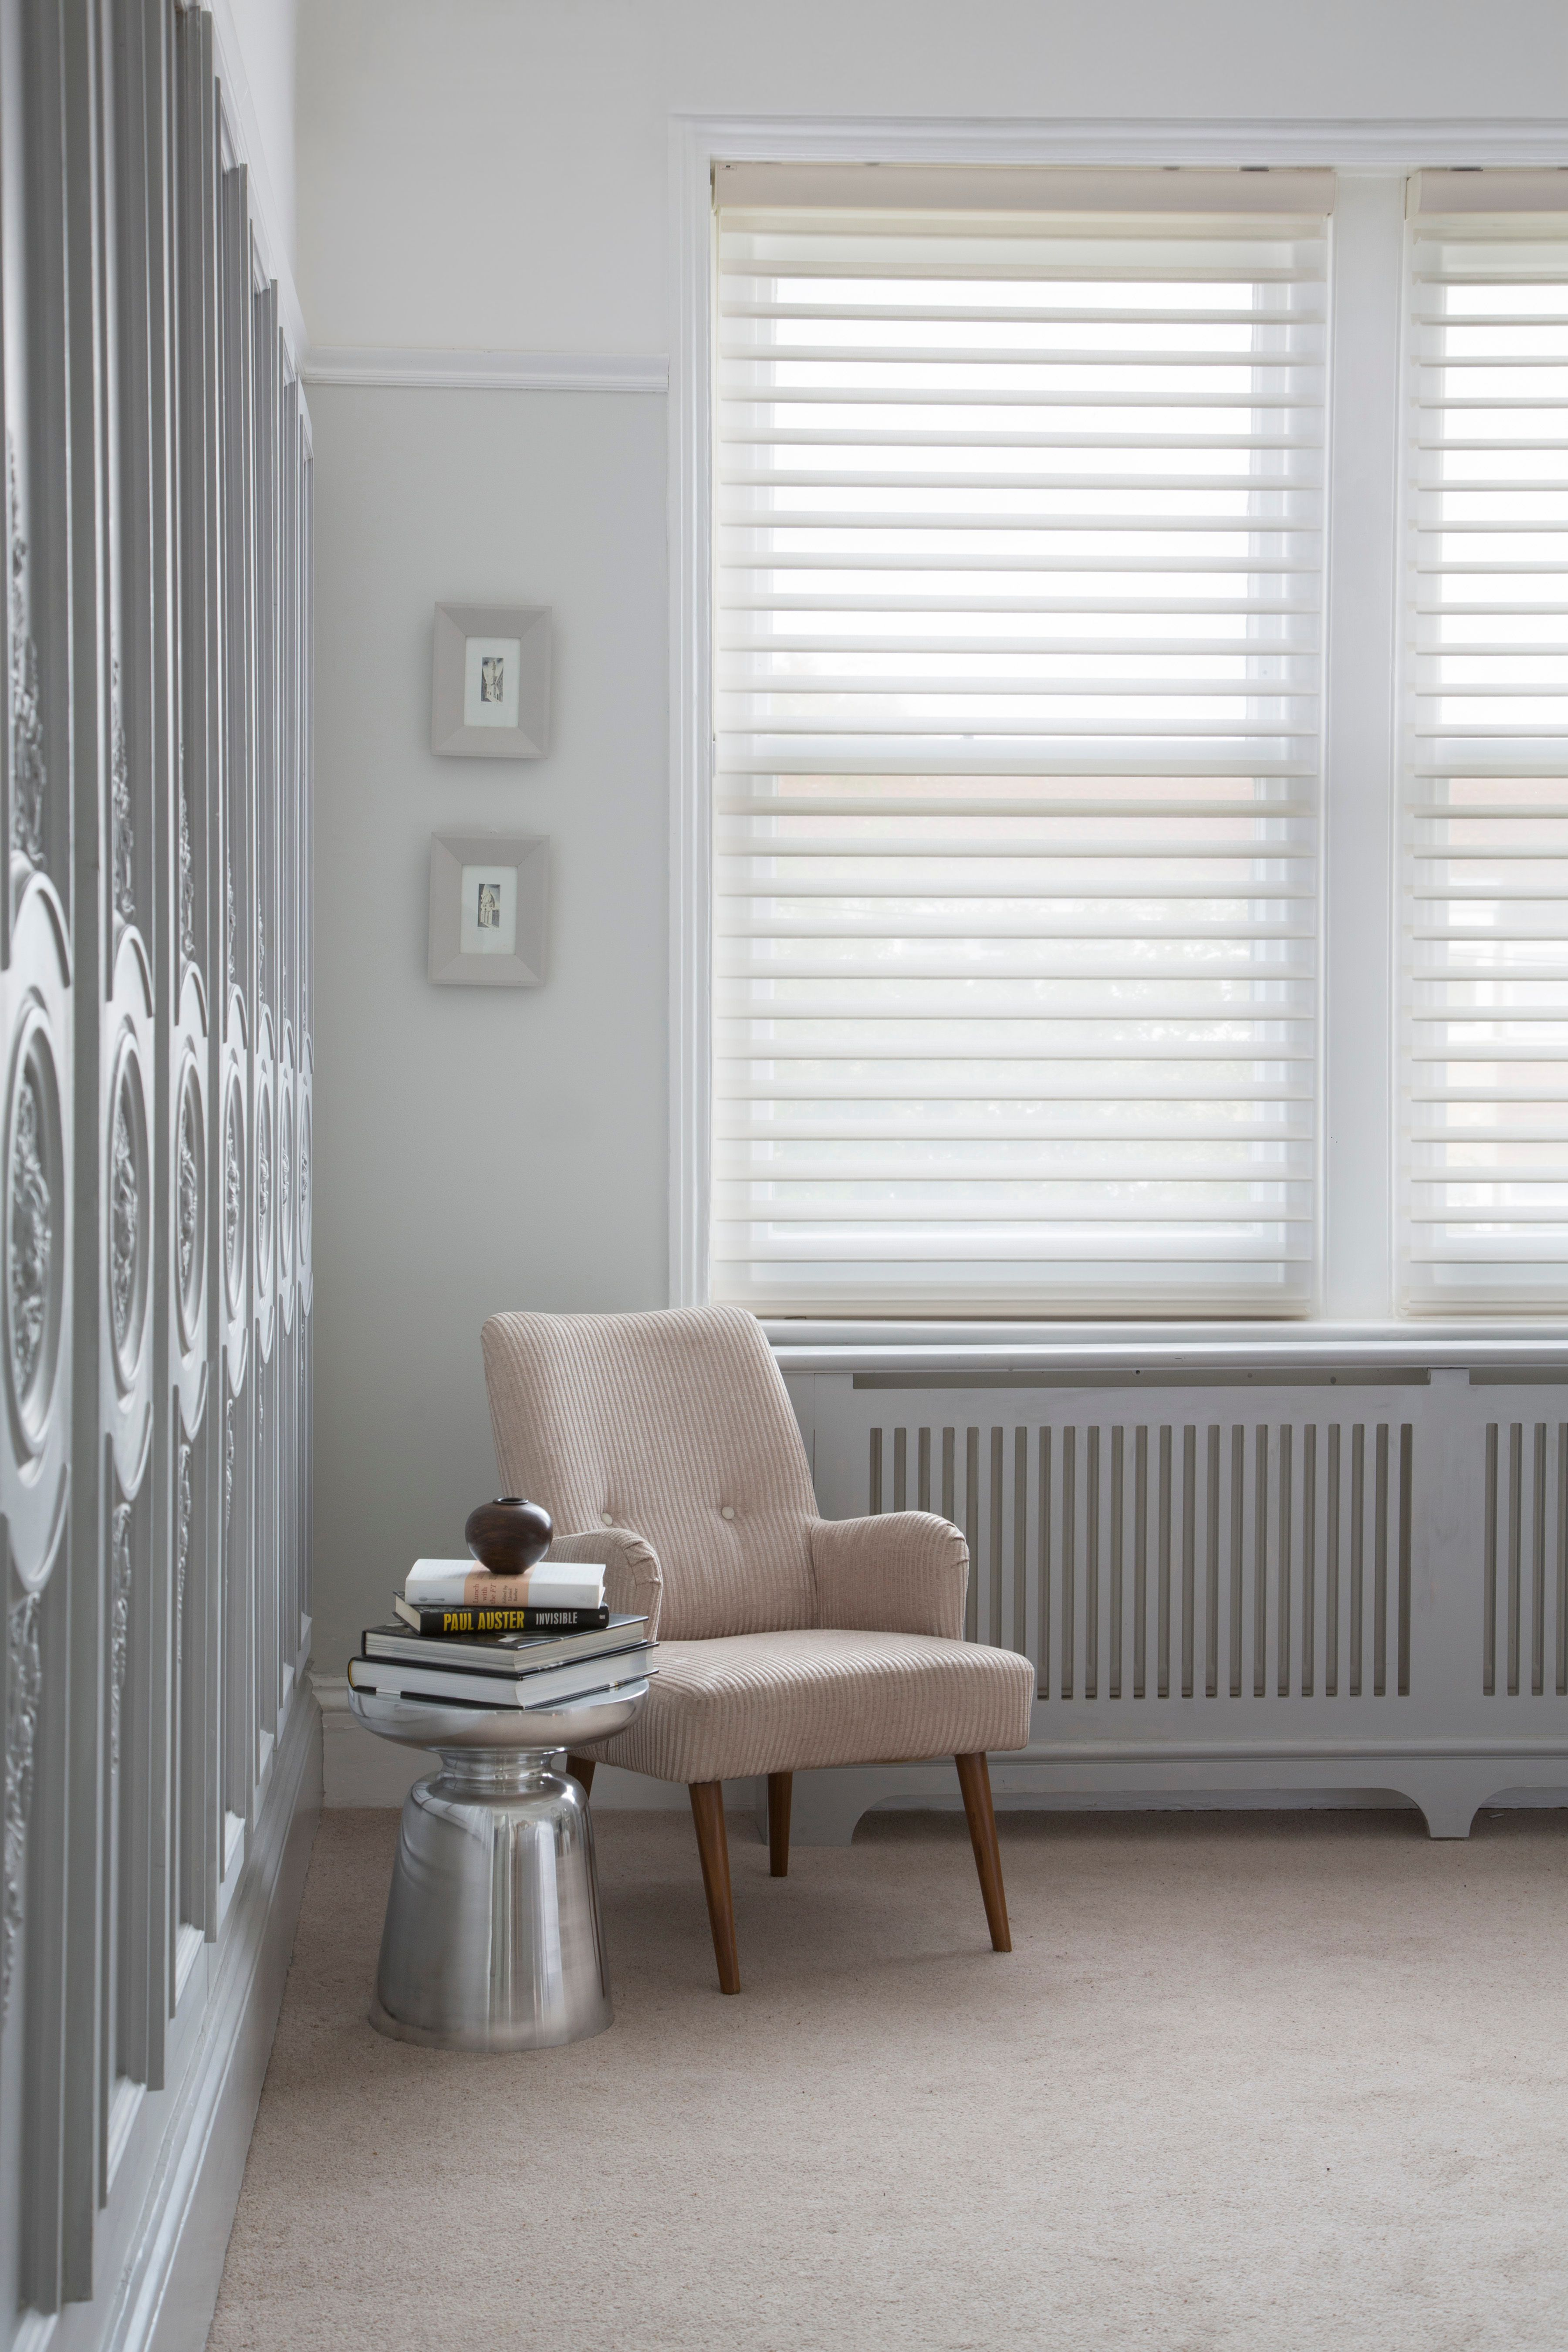 Luxaflex Silhouette Shades Superbly Stylish Take The Harshest Sunlight And Smoothly Transform It Into Beautifully Diffused Natural